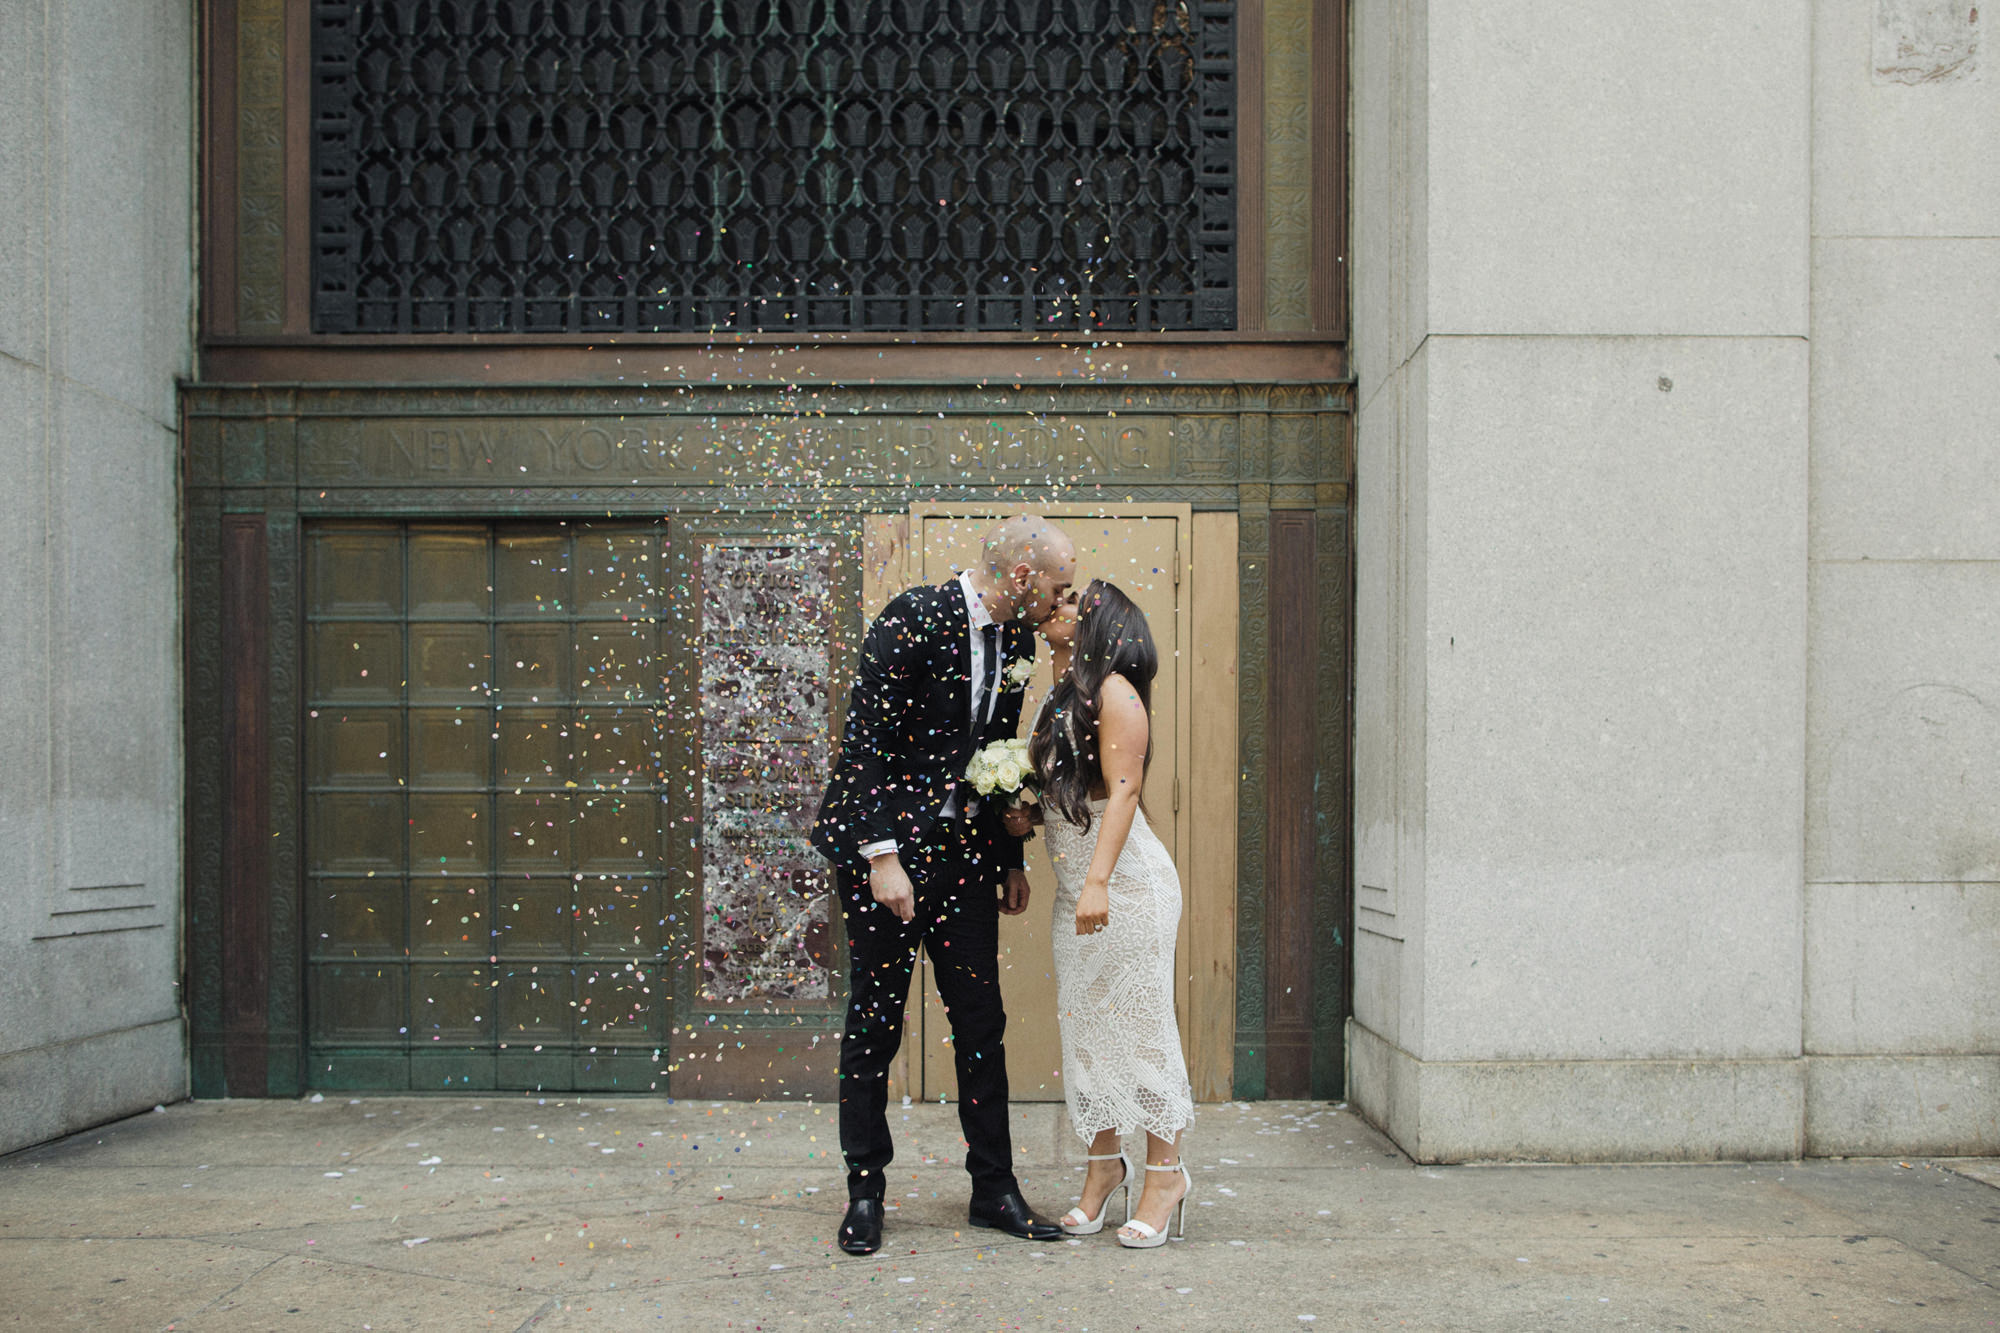 NYC_ELOPEMENT_CITYHALL_BROOKLYN_SAMMBLAKE_0021.jpg